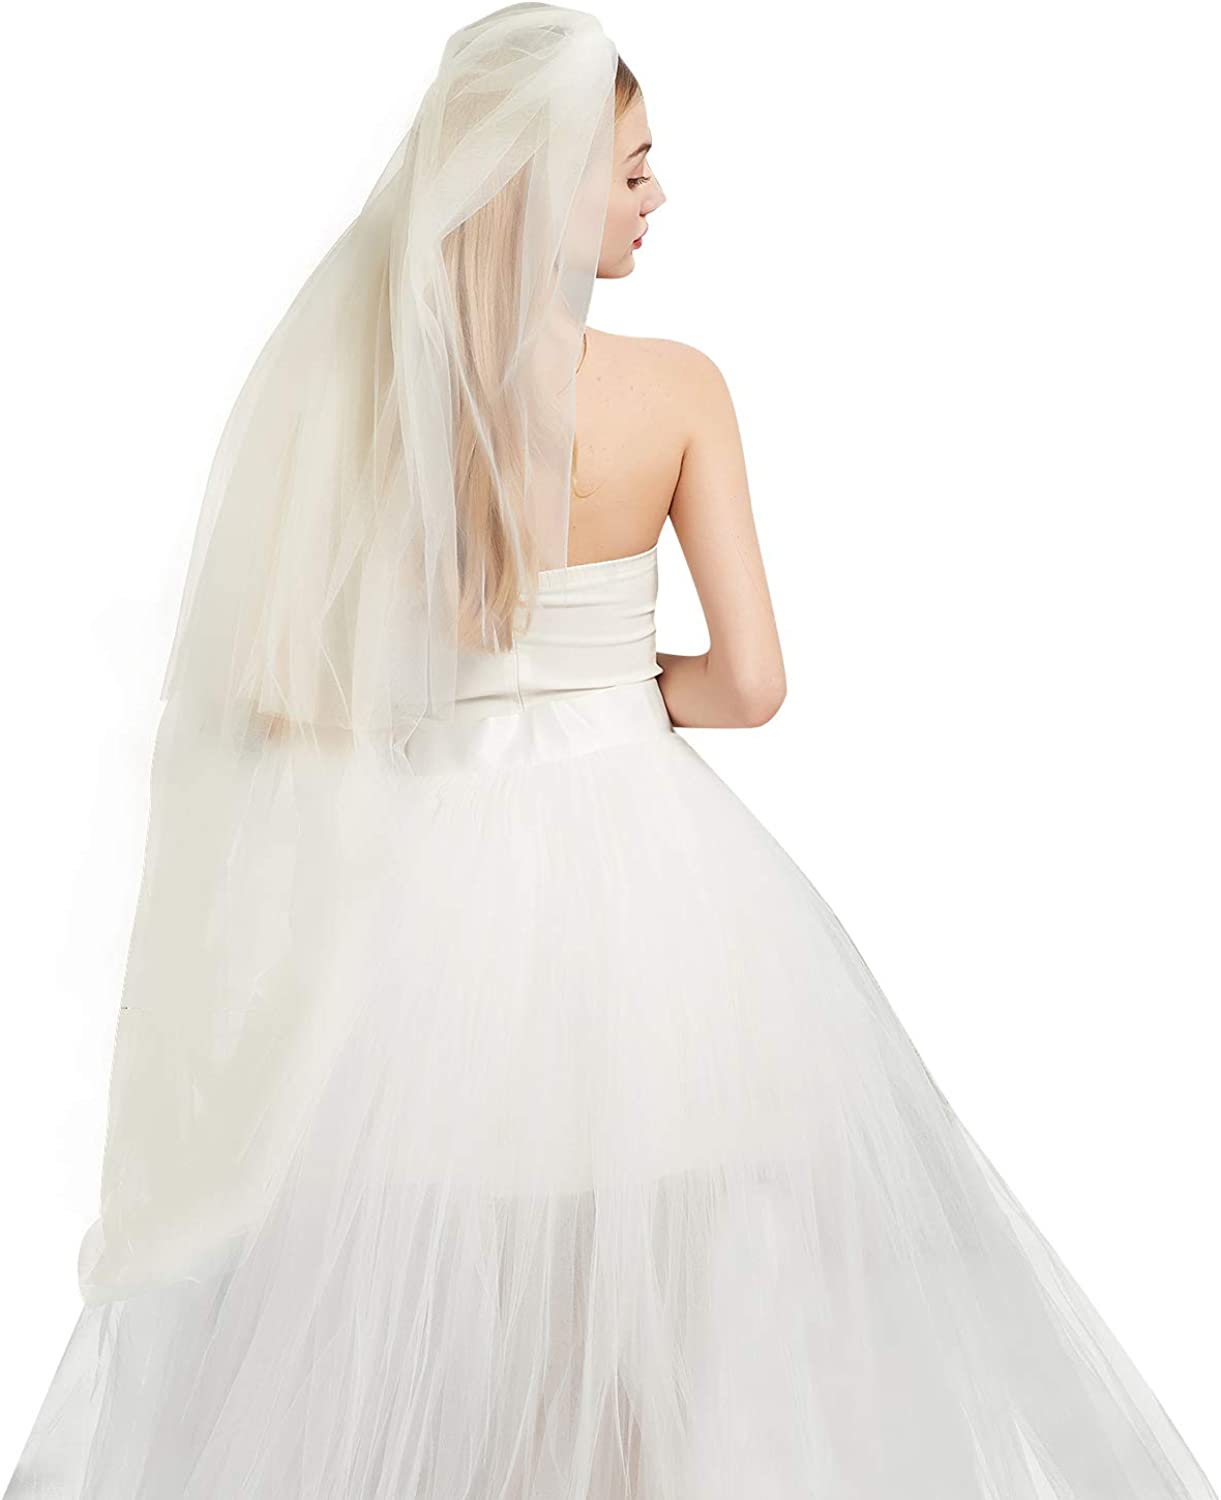 Wedding Bridal Veil with Comb 2 Tier Cut Edge Cathedral &Waltz Length White Ivory